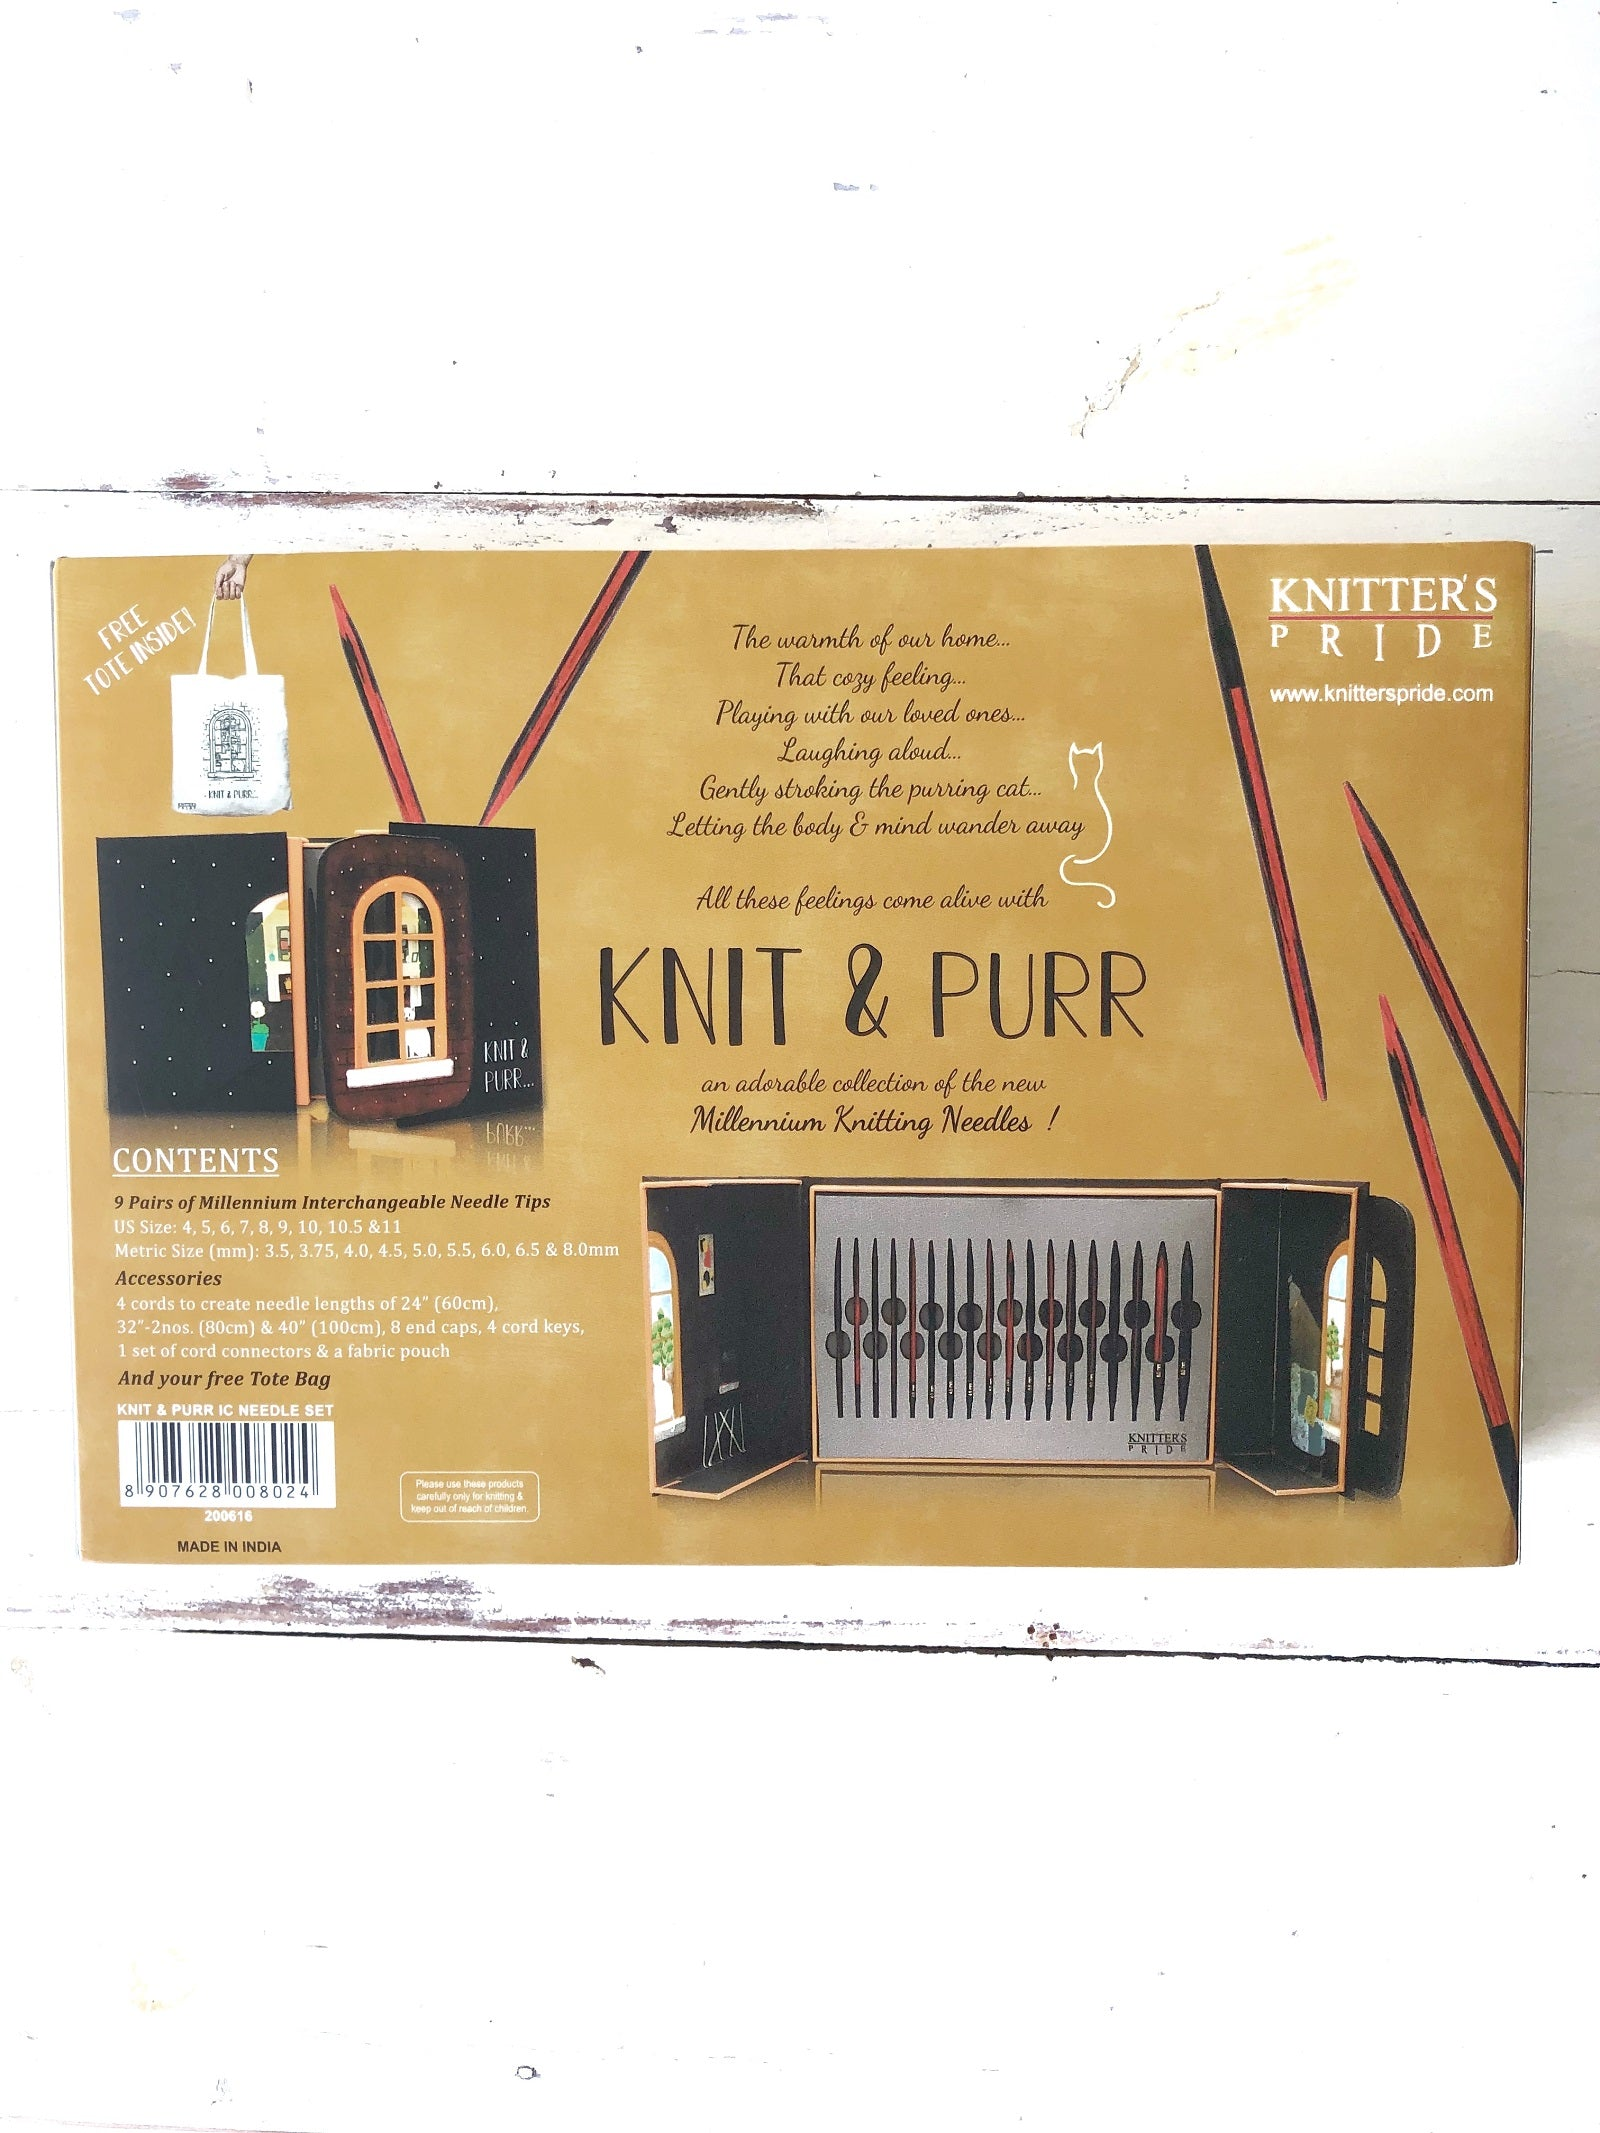 Knitter/'s Pride Knit and Purr Interchangeable Knitting Needle Set